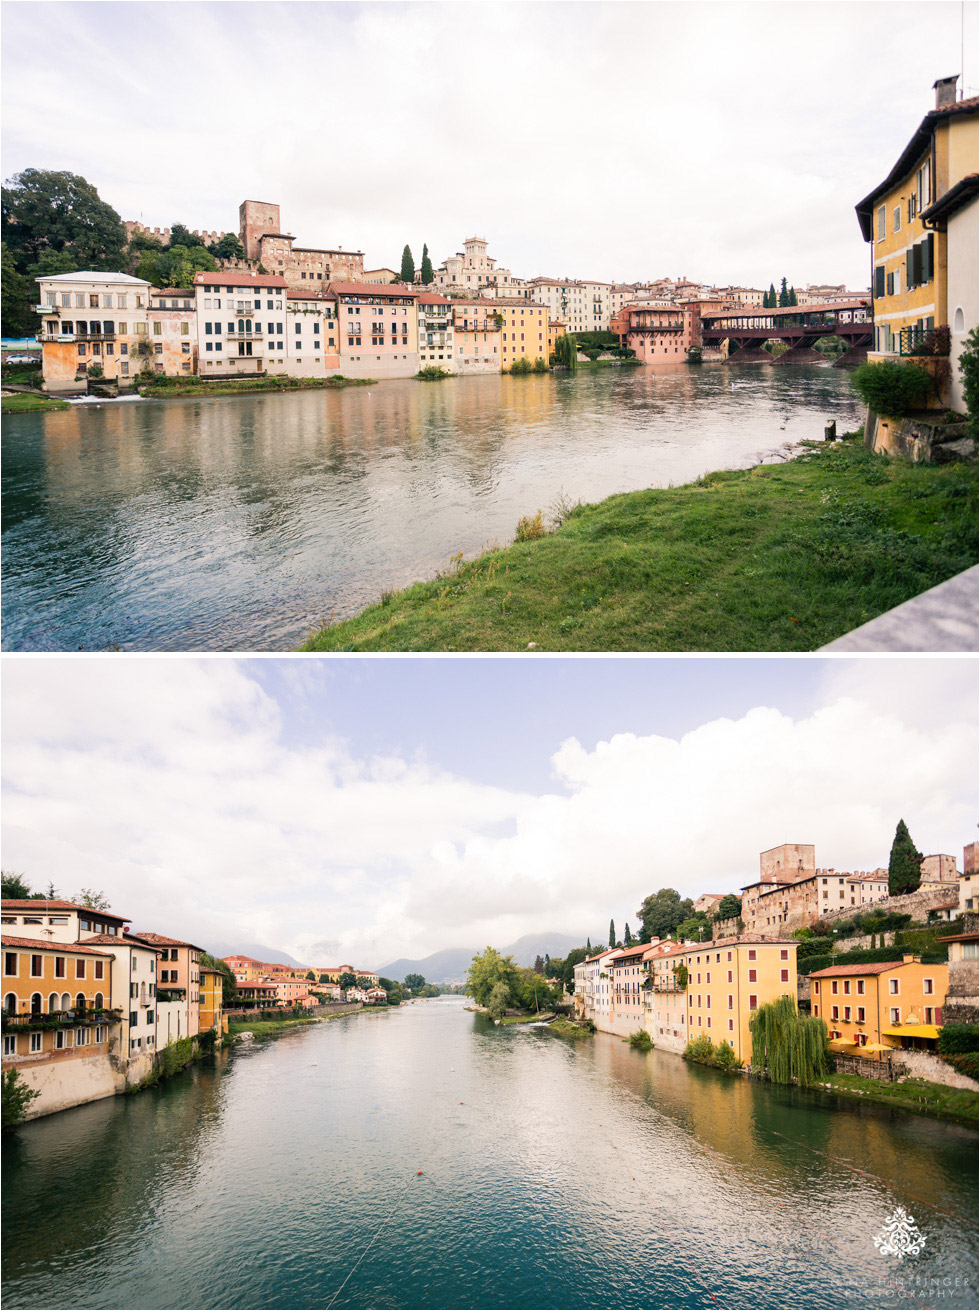 View of Ponte Vecchio in Bassano del Grappa in Italy - Blog of Nina Hintringer Photography - Wedding Photography, Wedding Reportage and Destination Weddings